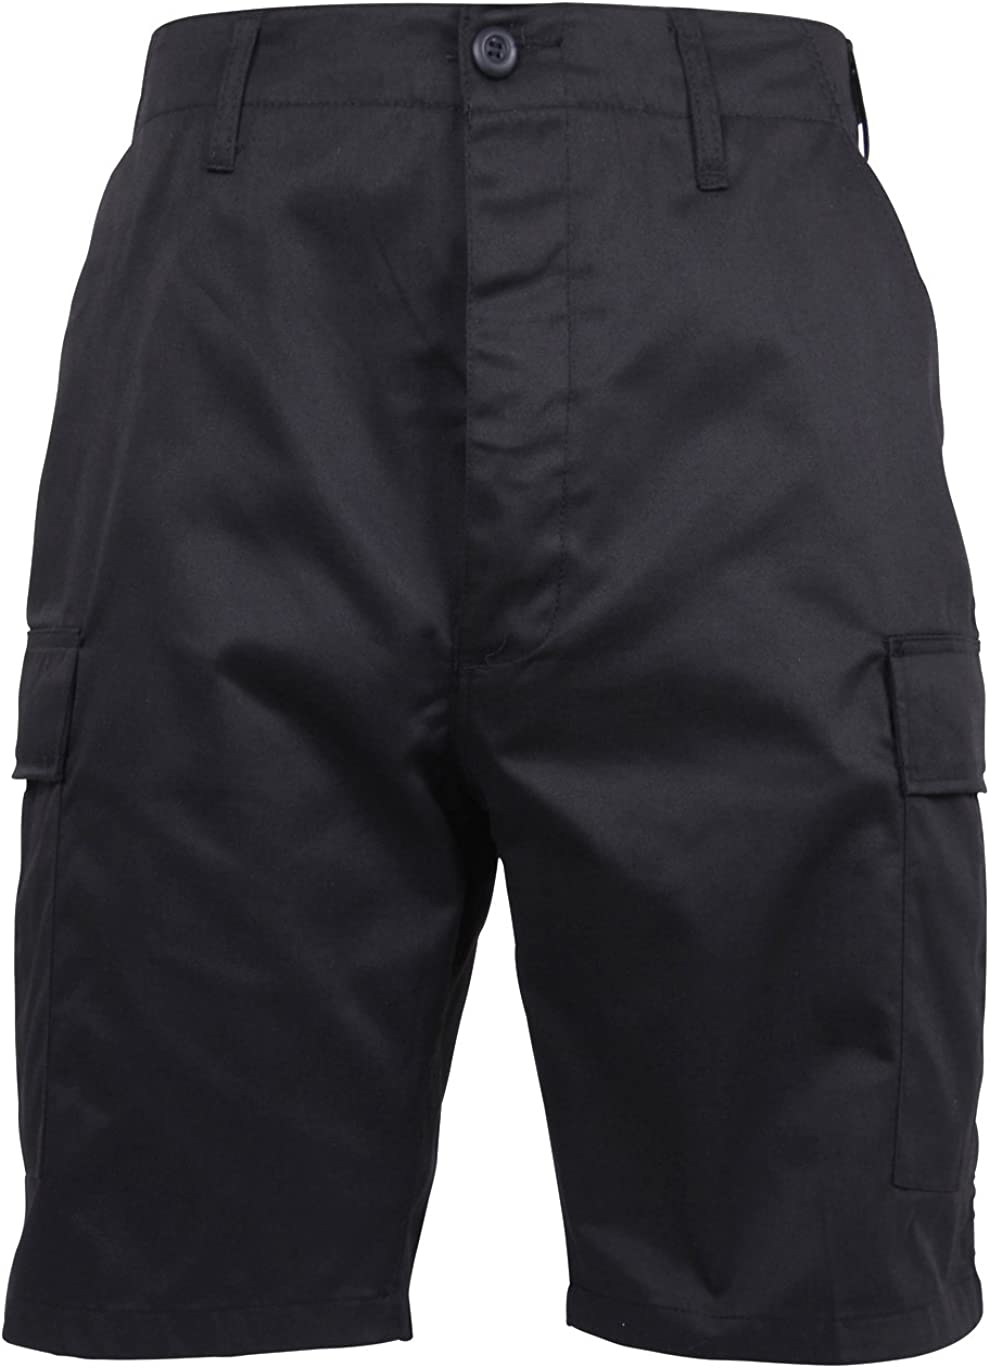 Rothco Tactical BDU (Battle Dress Uniform) Military Cargo Shorts : Clothing